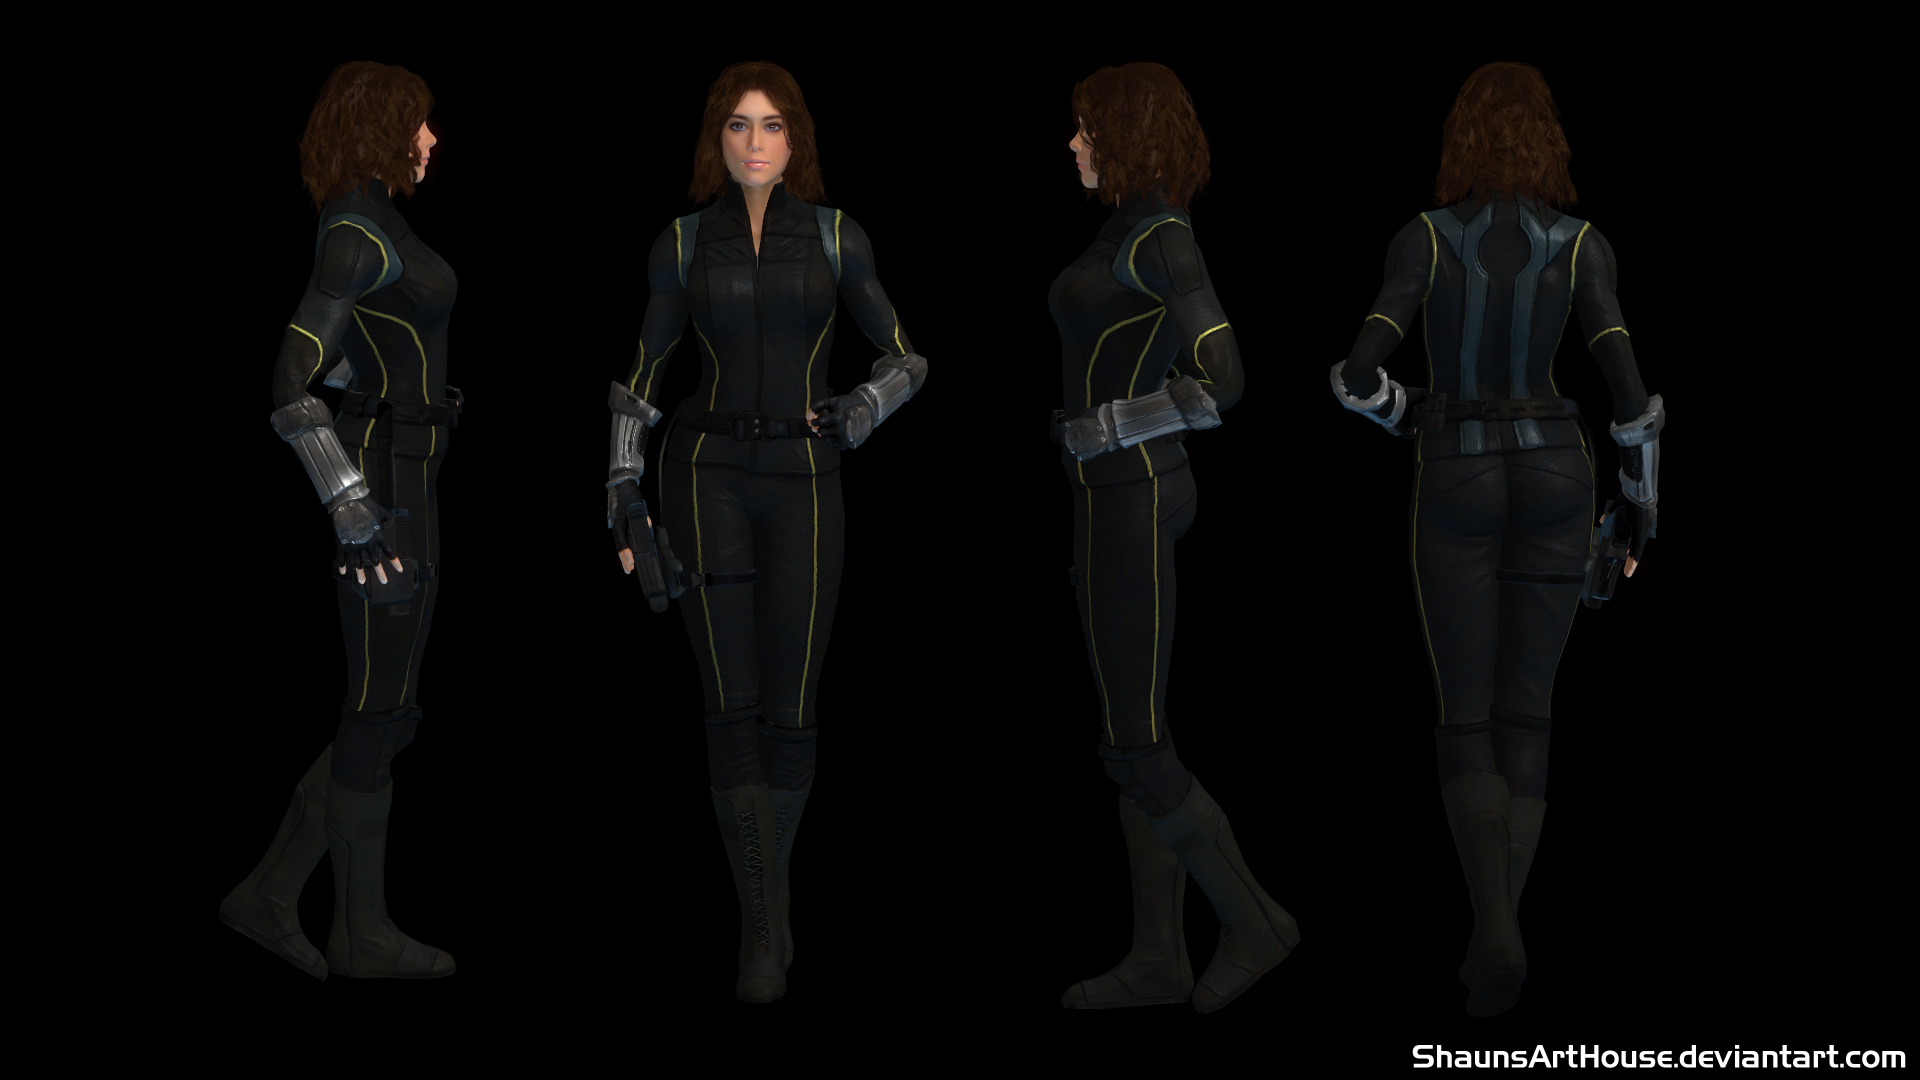 Quake Chloe Bennet Custom 3d Model By Shaunsarthouse On Deviantart